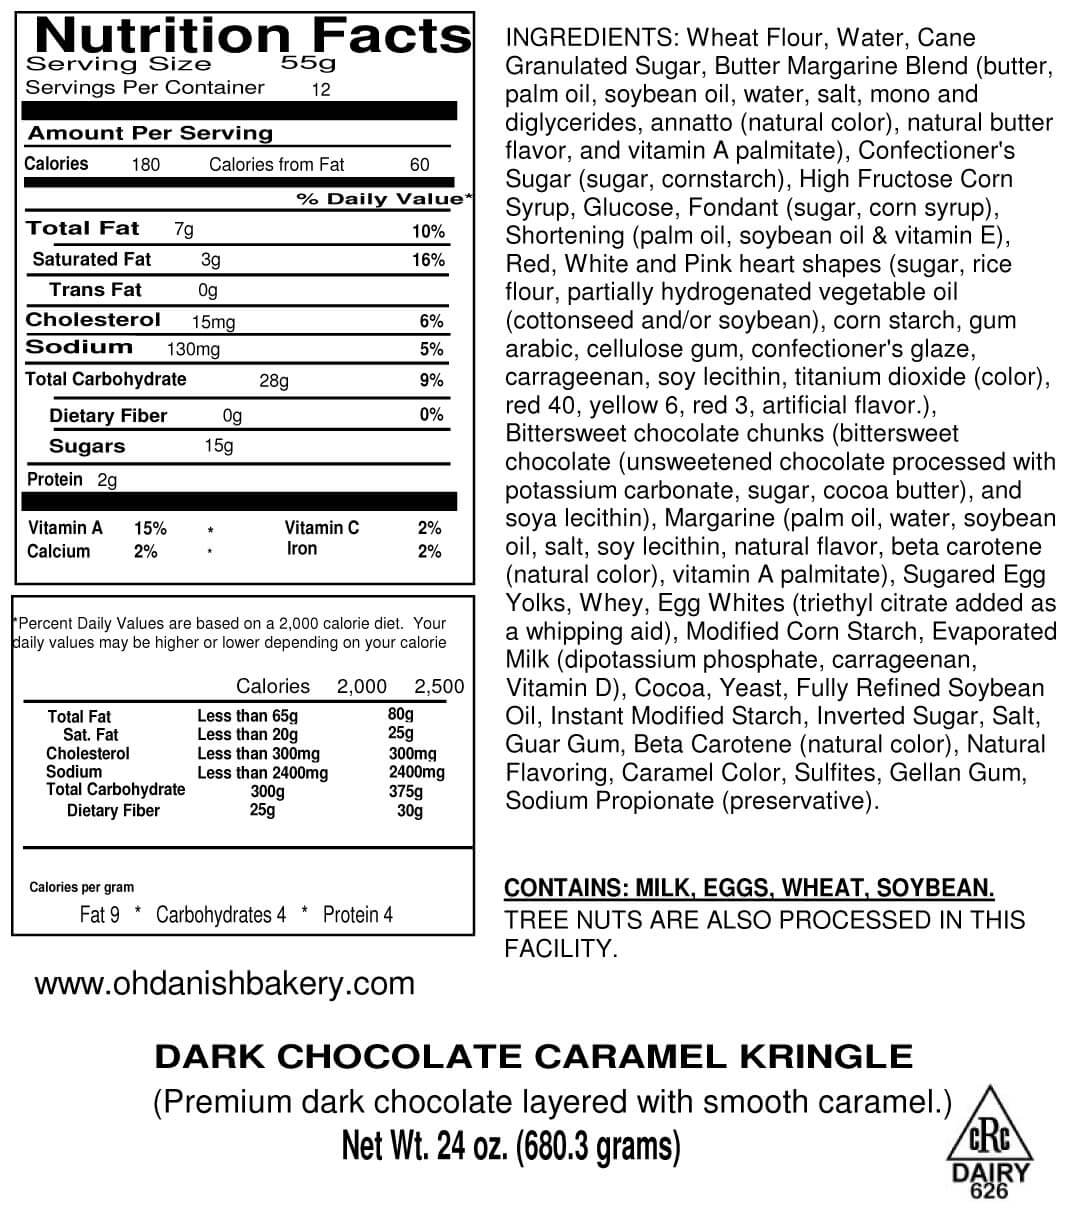 Nutritional Label for Dark Chocolate Caramel Kringle